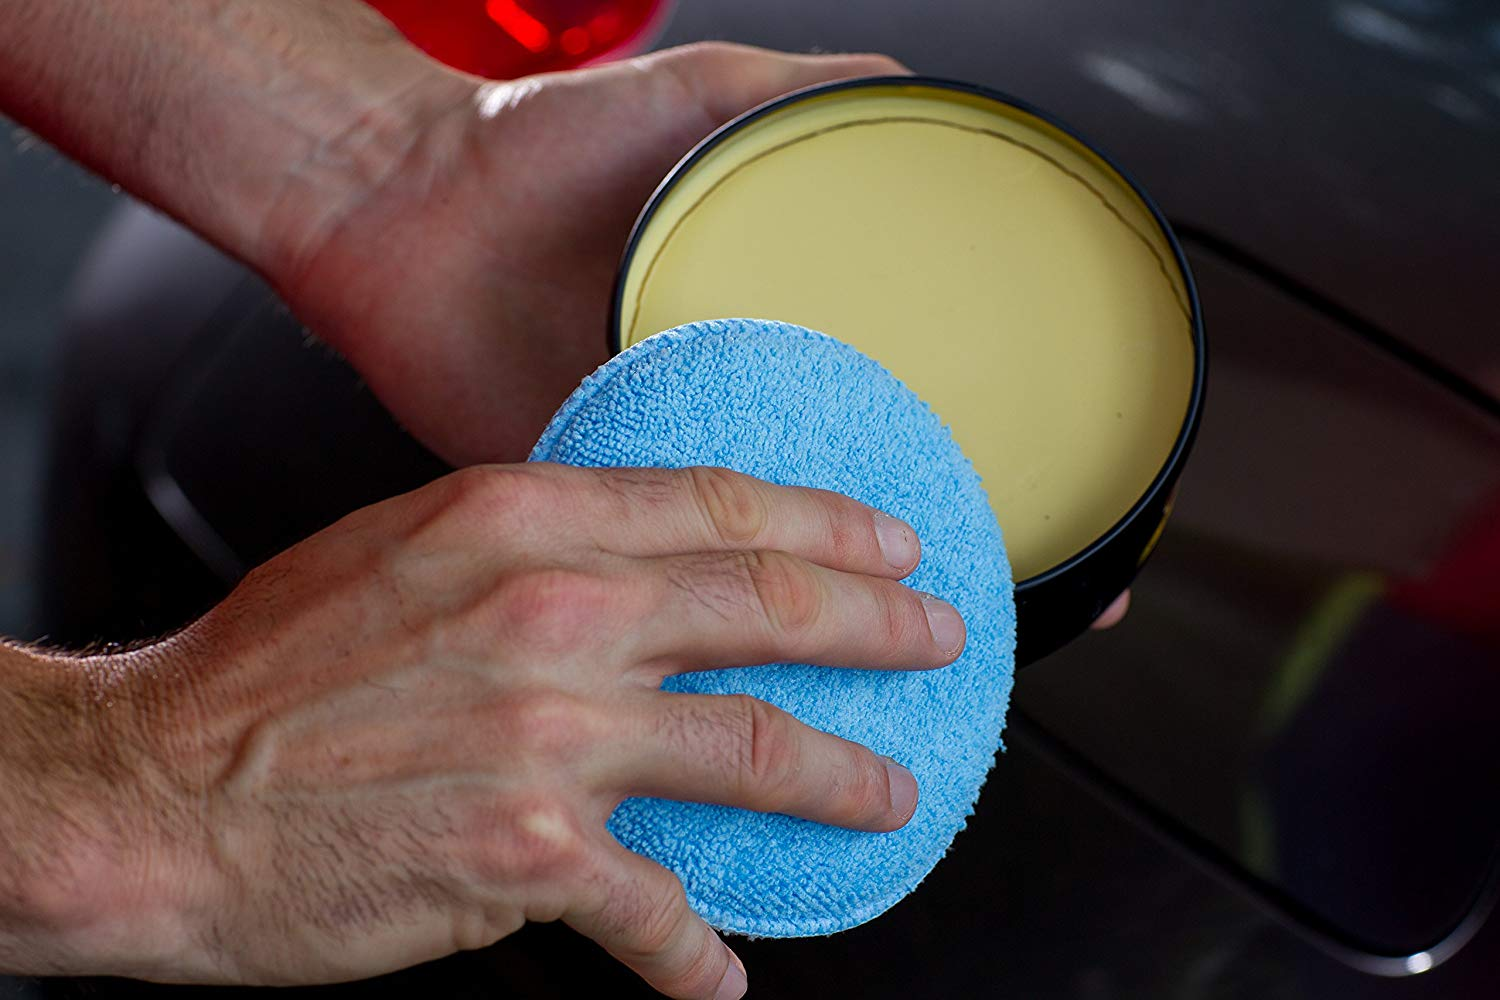 42 Brilliant Cleaning Microfiber Cloth Uses Viking Car Car Microfiber Application Pad #Microfiber #Cleaning #BudgetFriendly #Affordable #HouseCleaning #SaveMoney #SaveTime